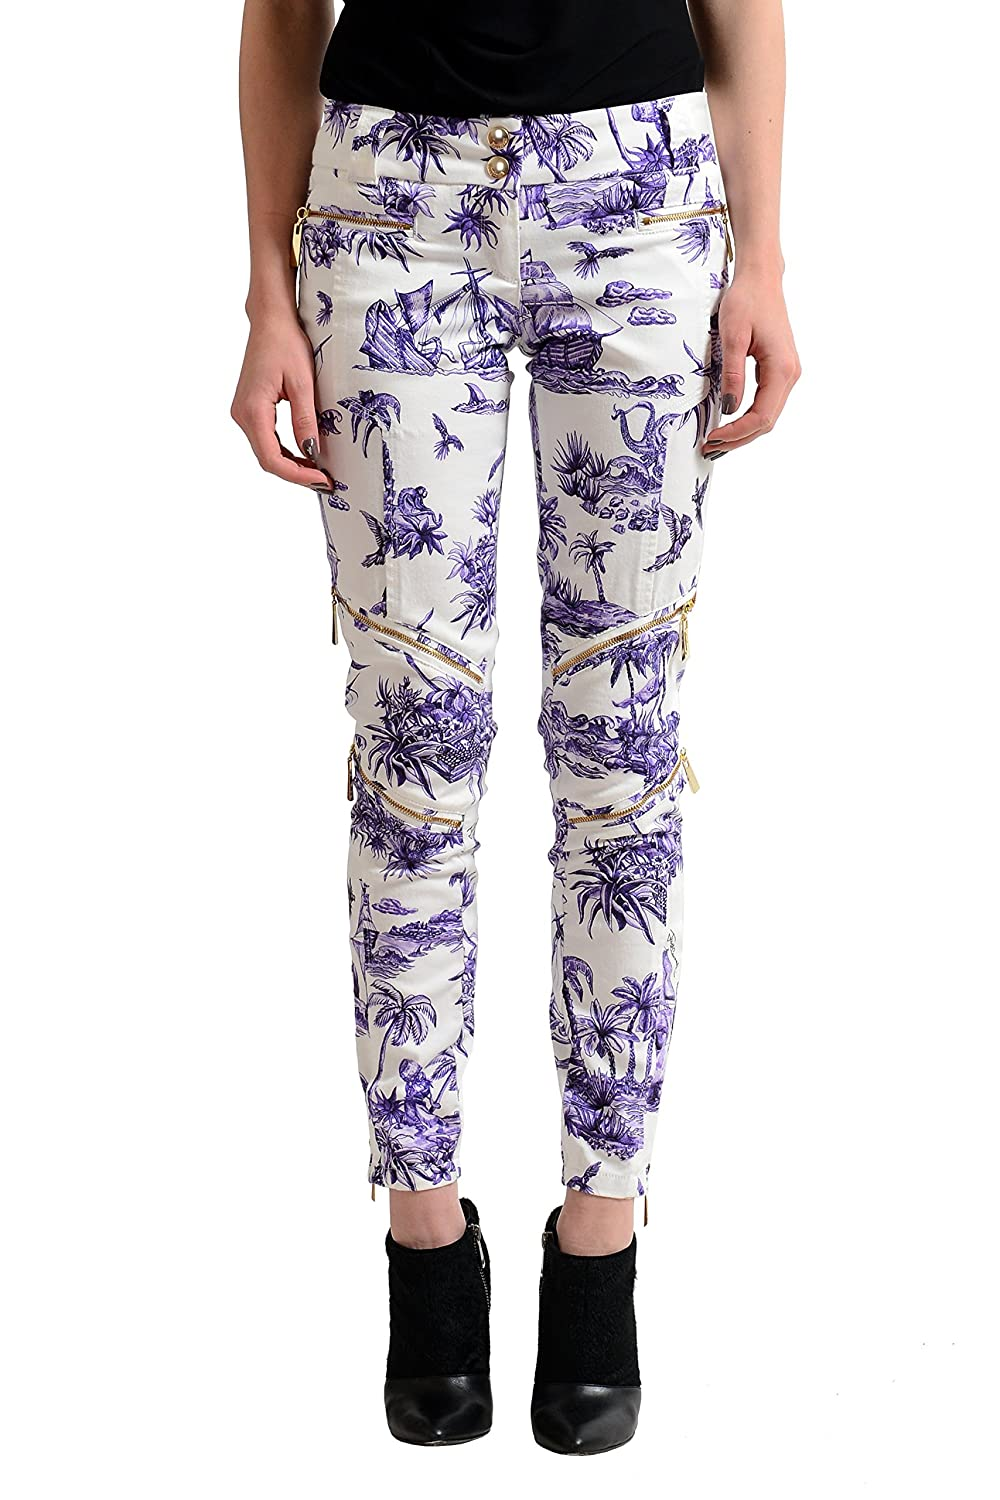 Just Cavalli Women's Multi-Color Printed Casual Pants US 26 IT 40